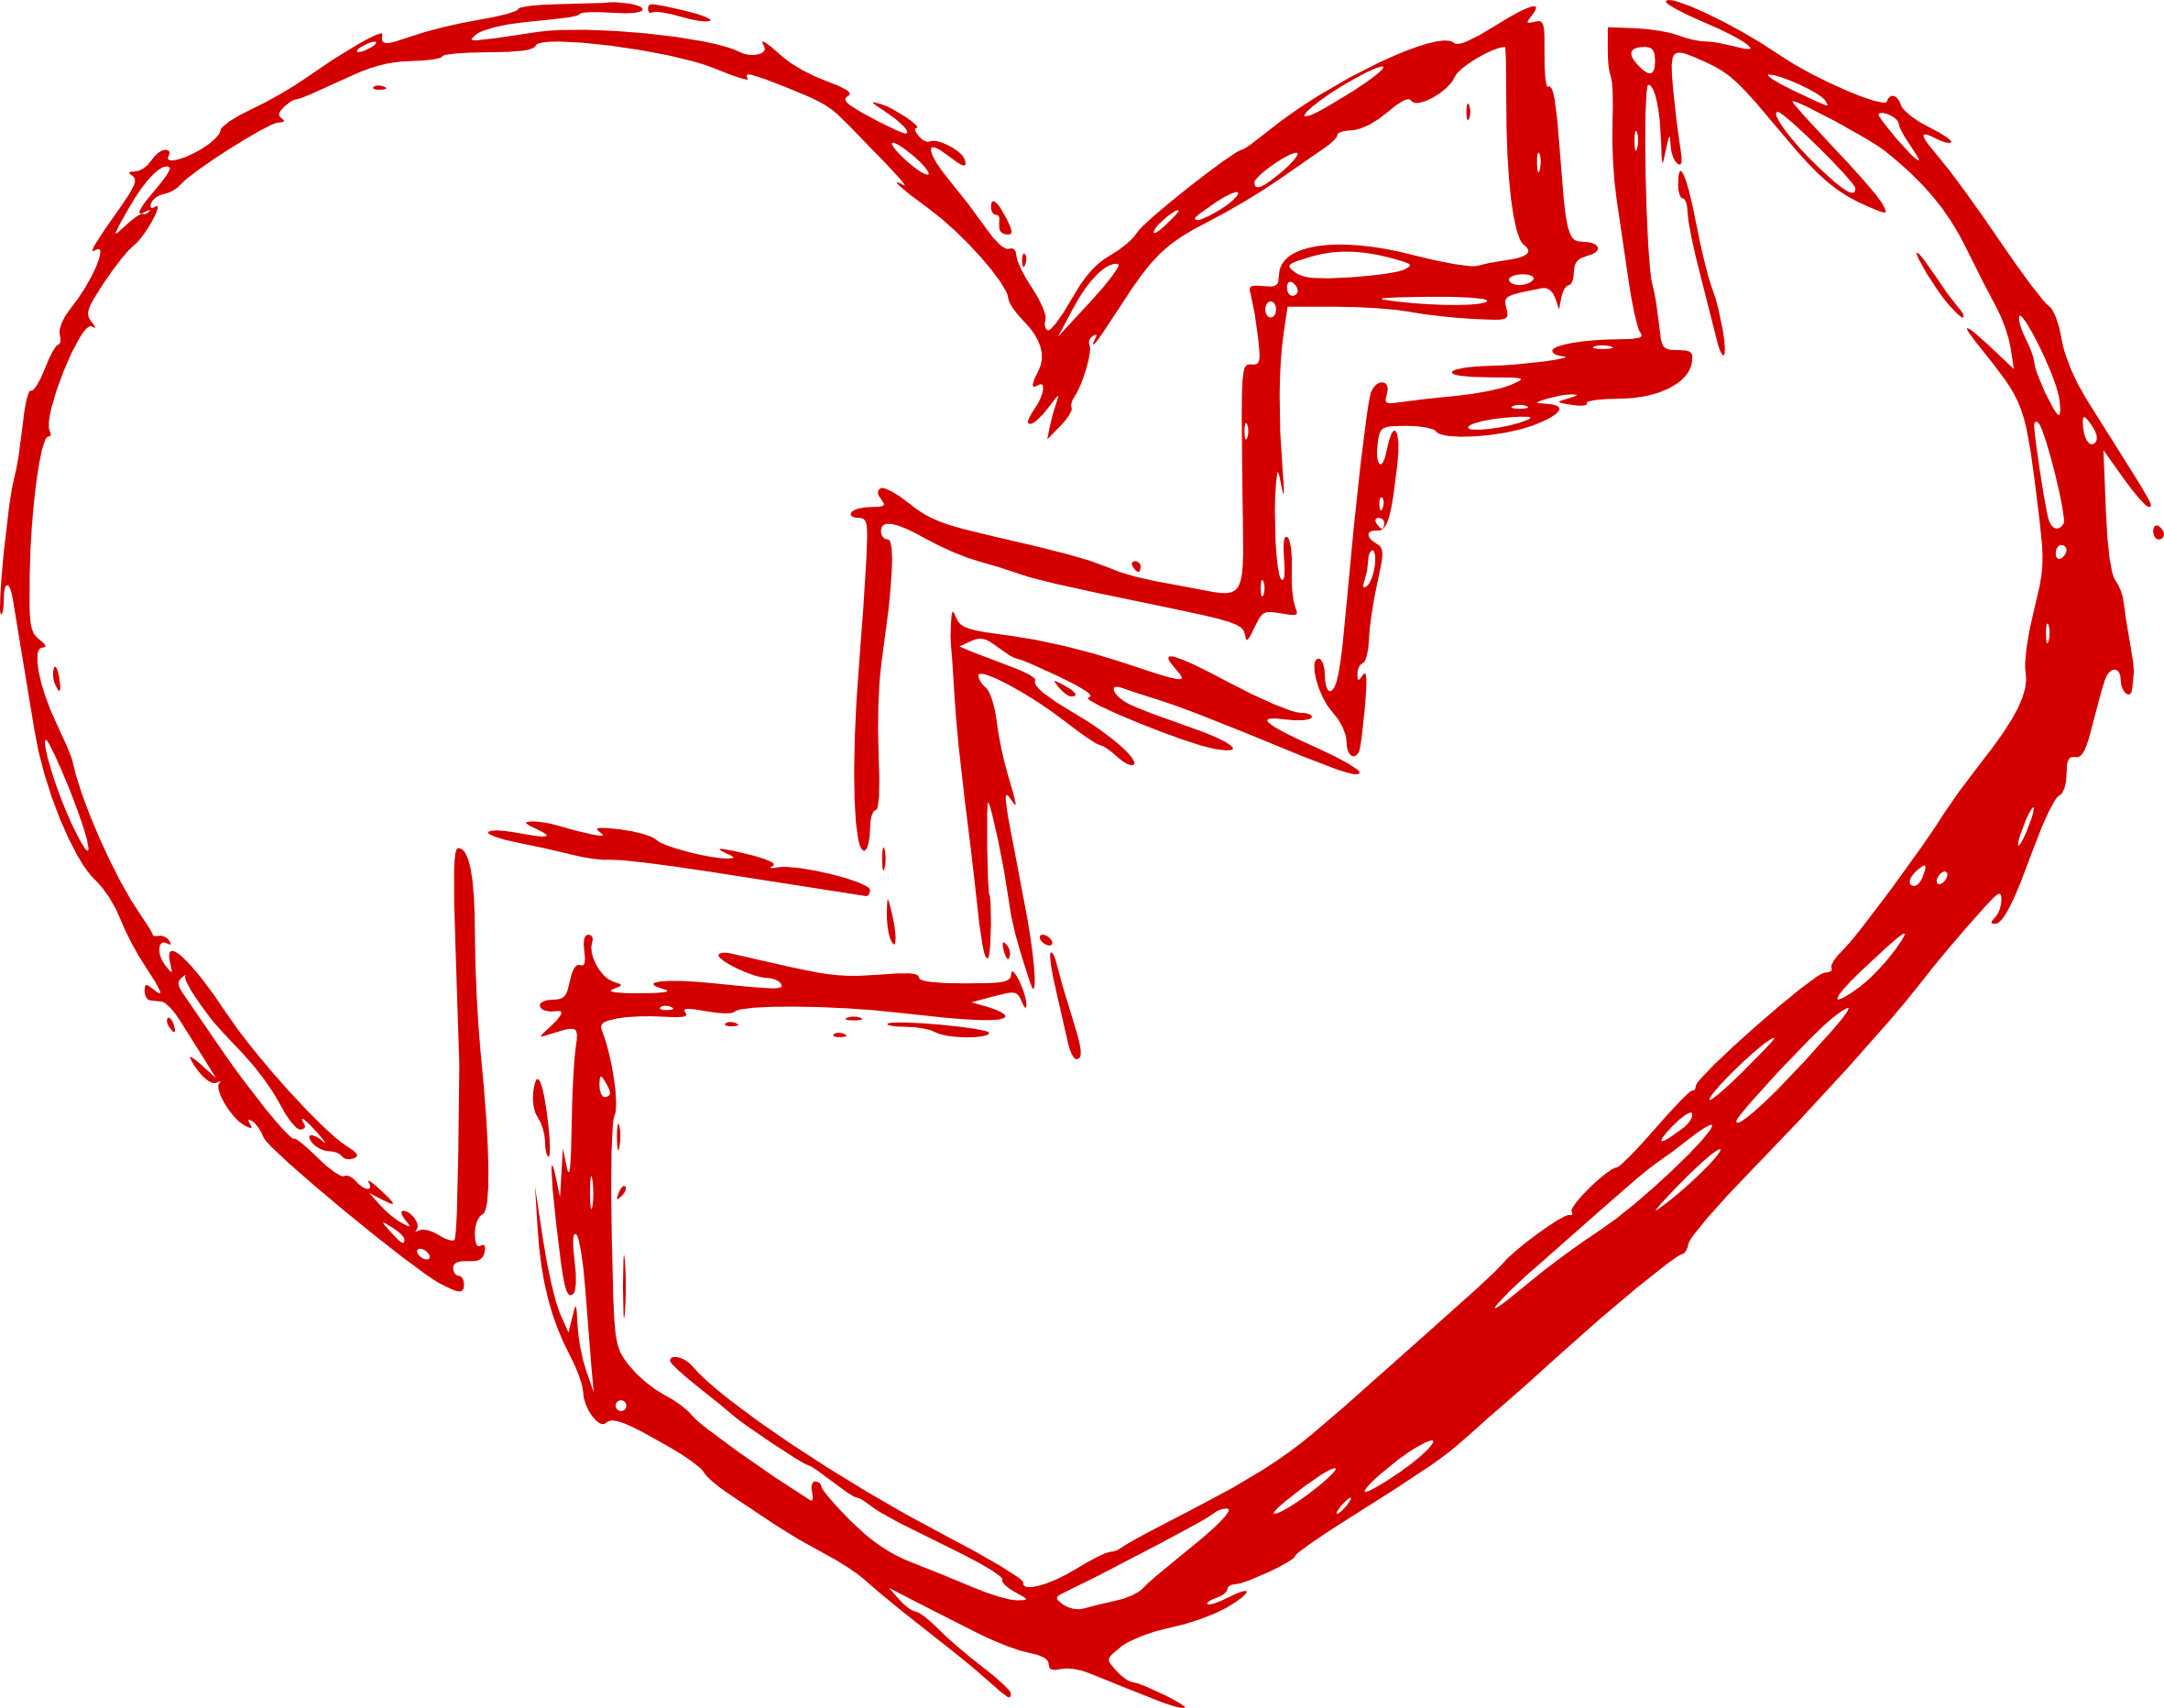 Broken transparent onlygfx com. Heart images png